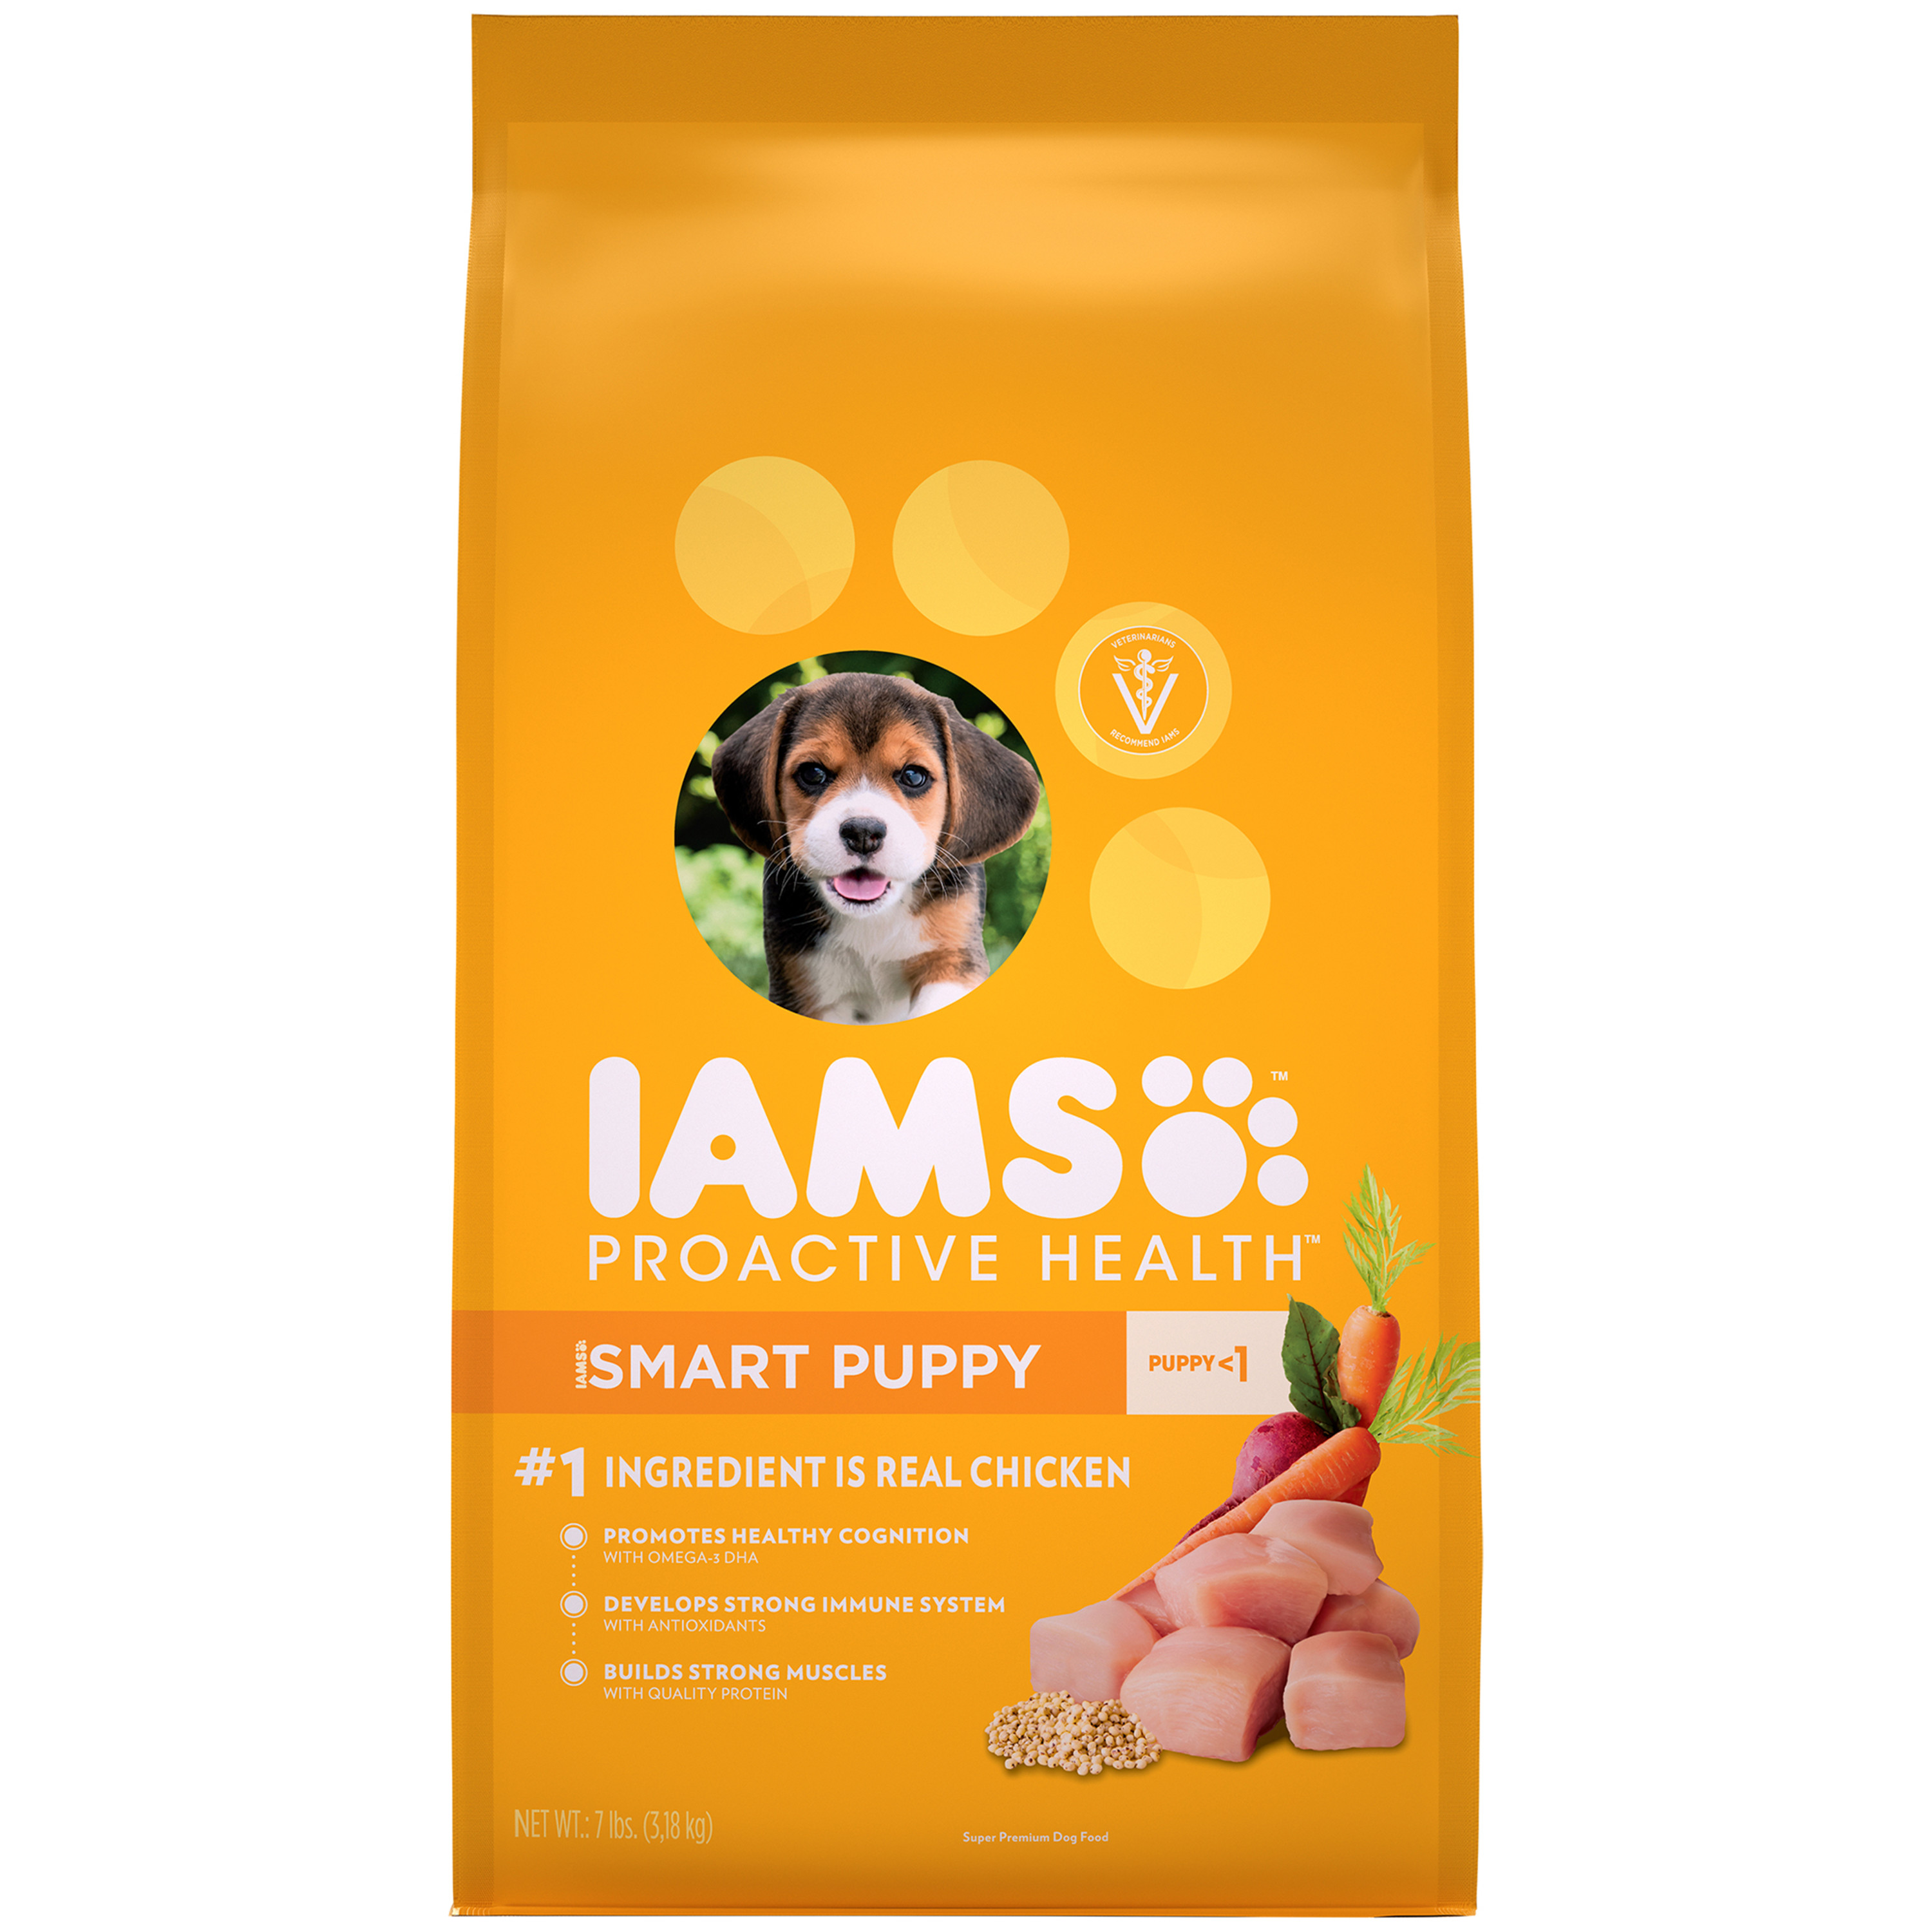 Iams Proactive Health Smart Puppy Dry Dog Food, Chicken, 7 Lb Bag